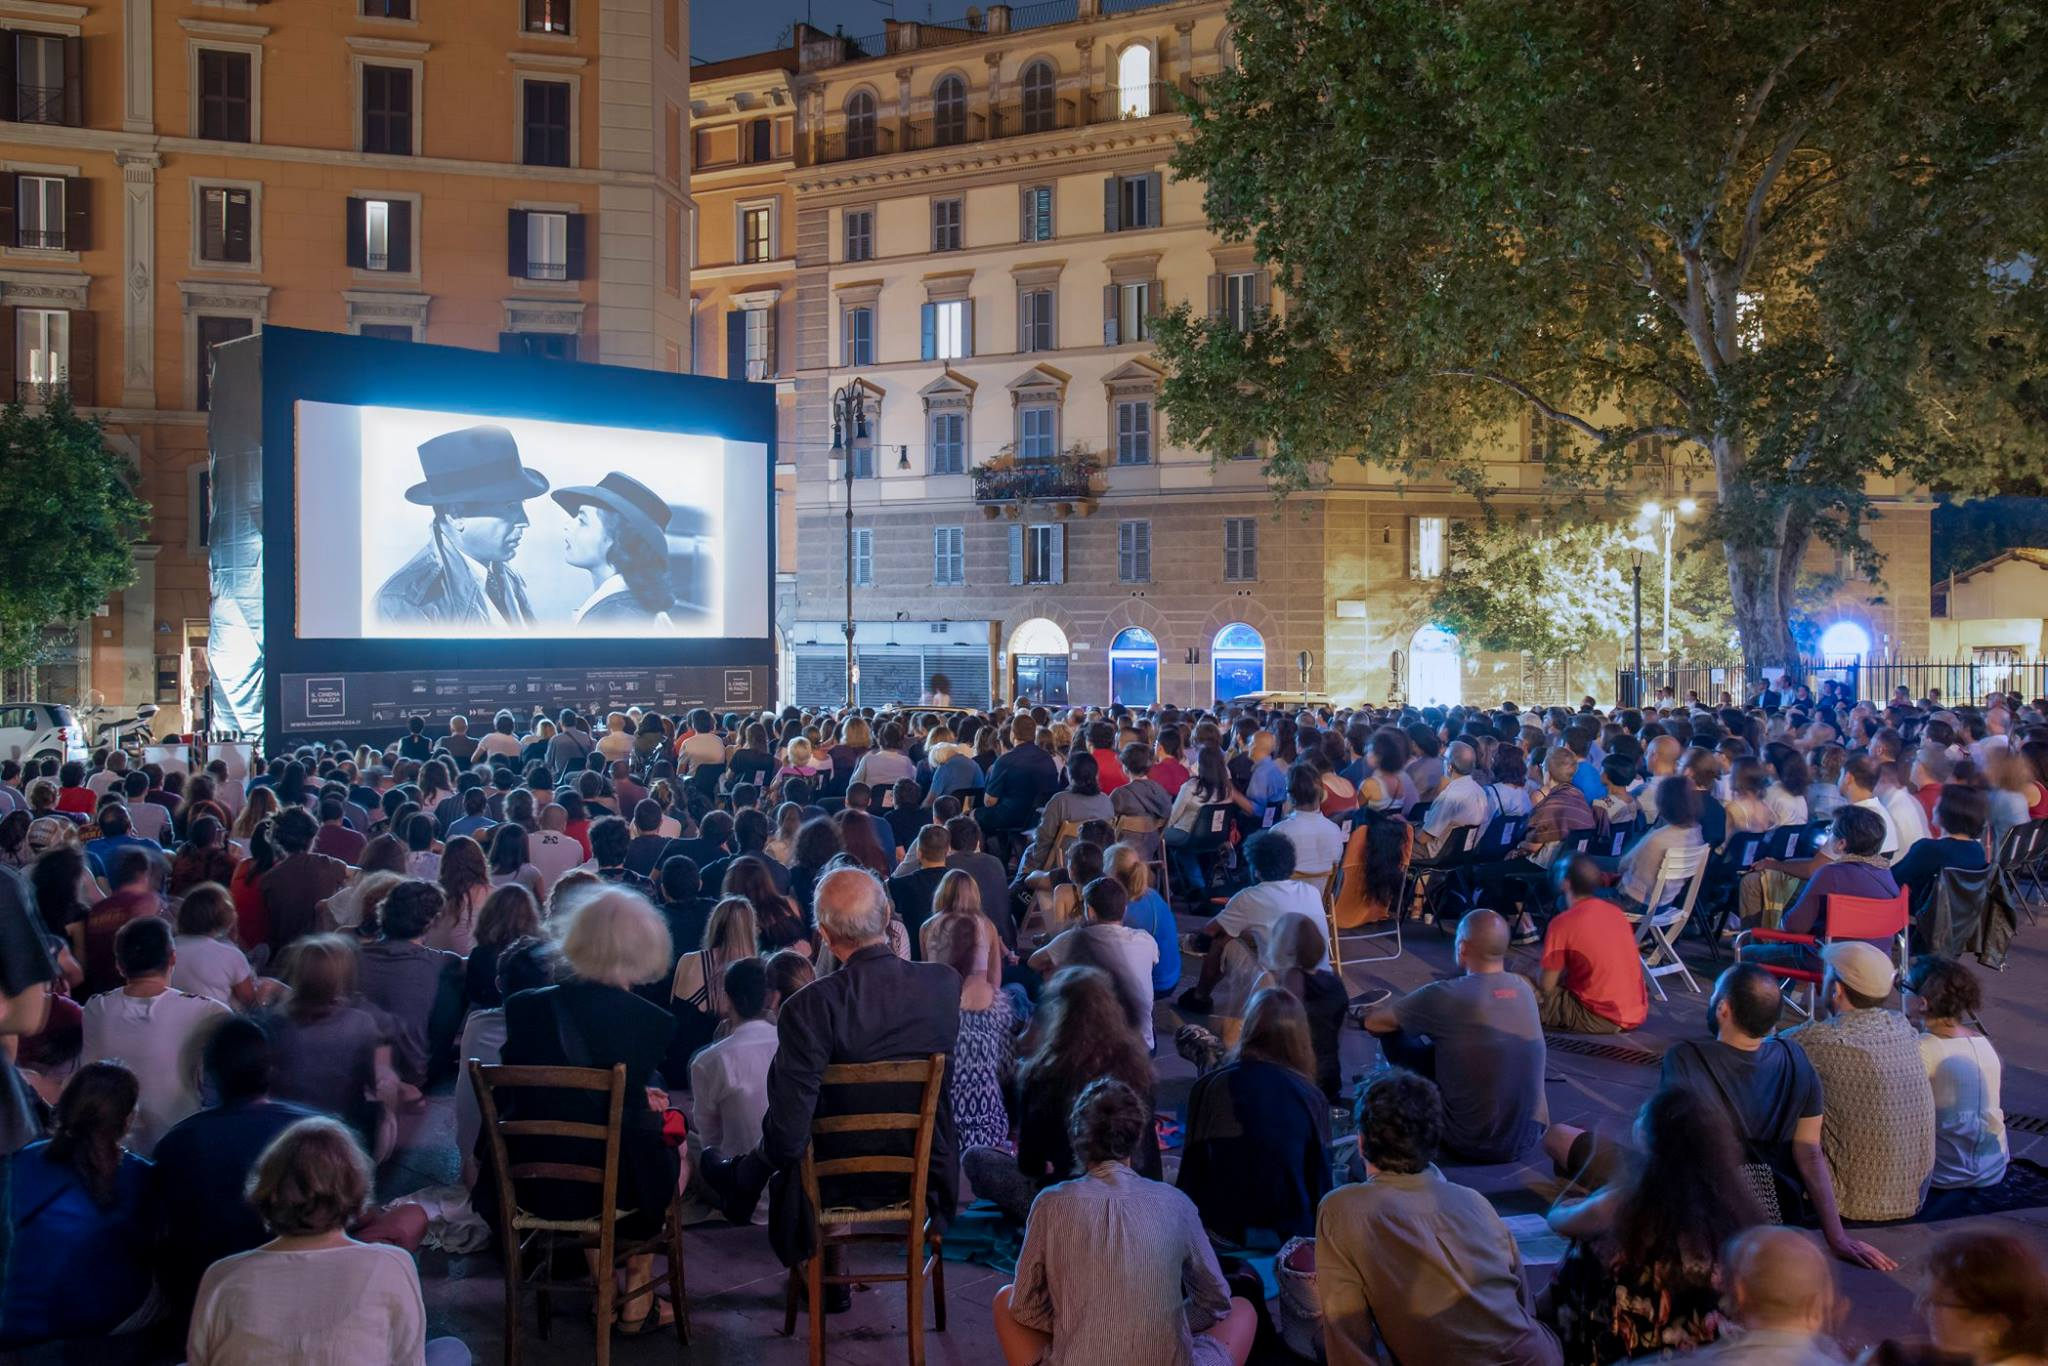 Cinema in Piazza con Debra Winger e Jeremy Irons